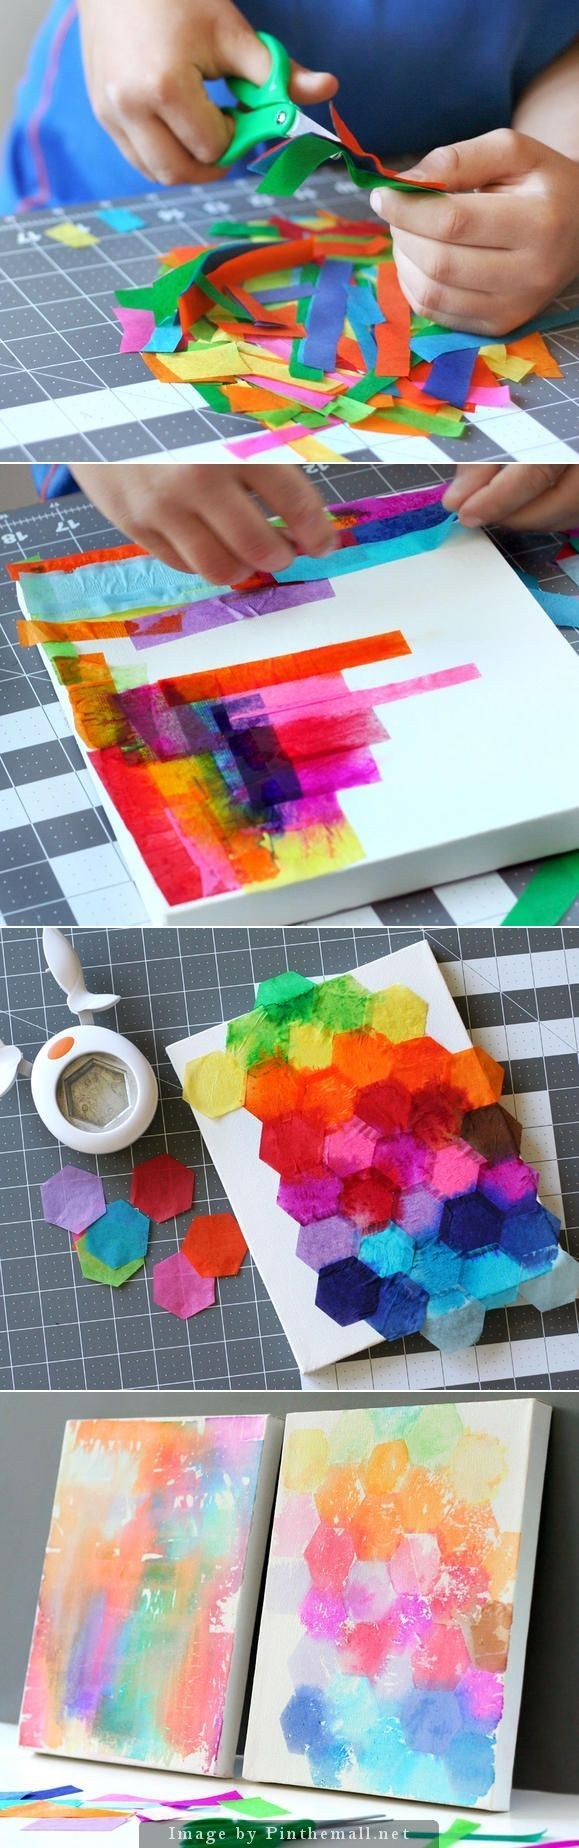 "Bleeding Tissue Paper Art - ""Painting"" with tissue paper is not only fun but beautiful! This craft requires bleeding art tissue instead of regular wrapping tissue. This specialty tissue can be found in craft stores. This project can be completed freehand with scissors or more structured with paper punches."